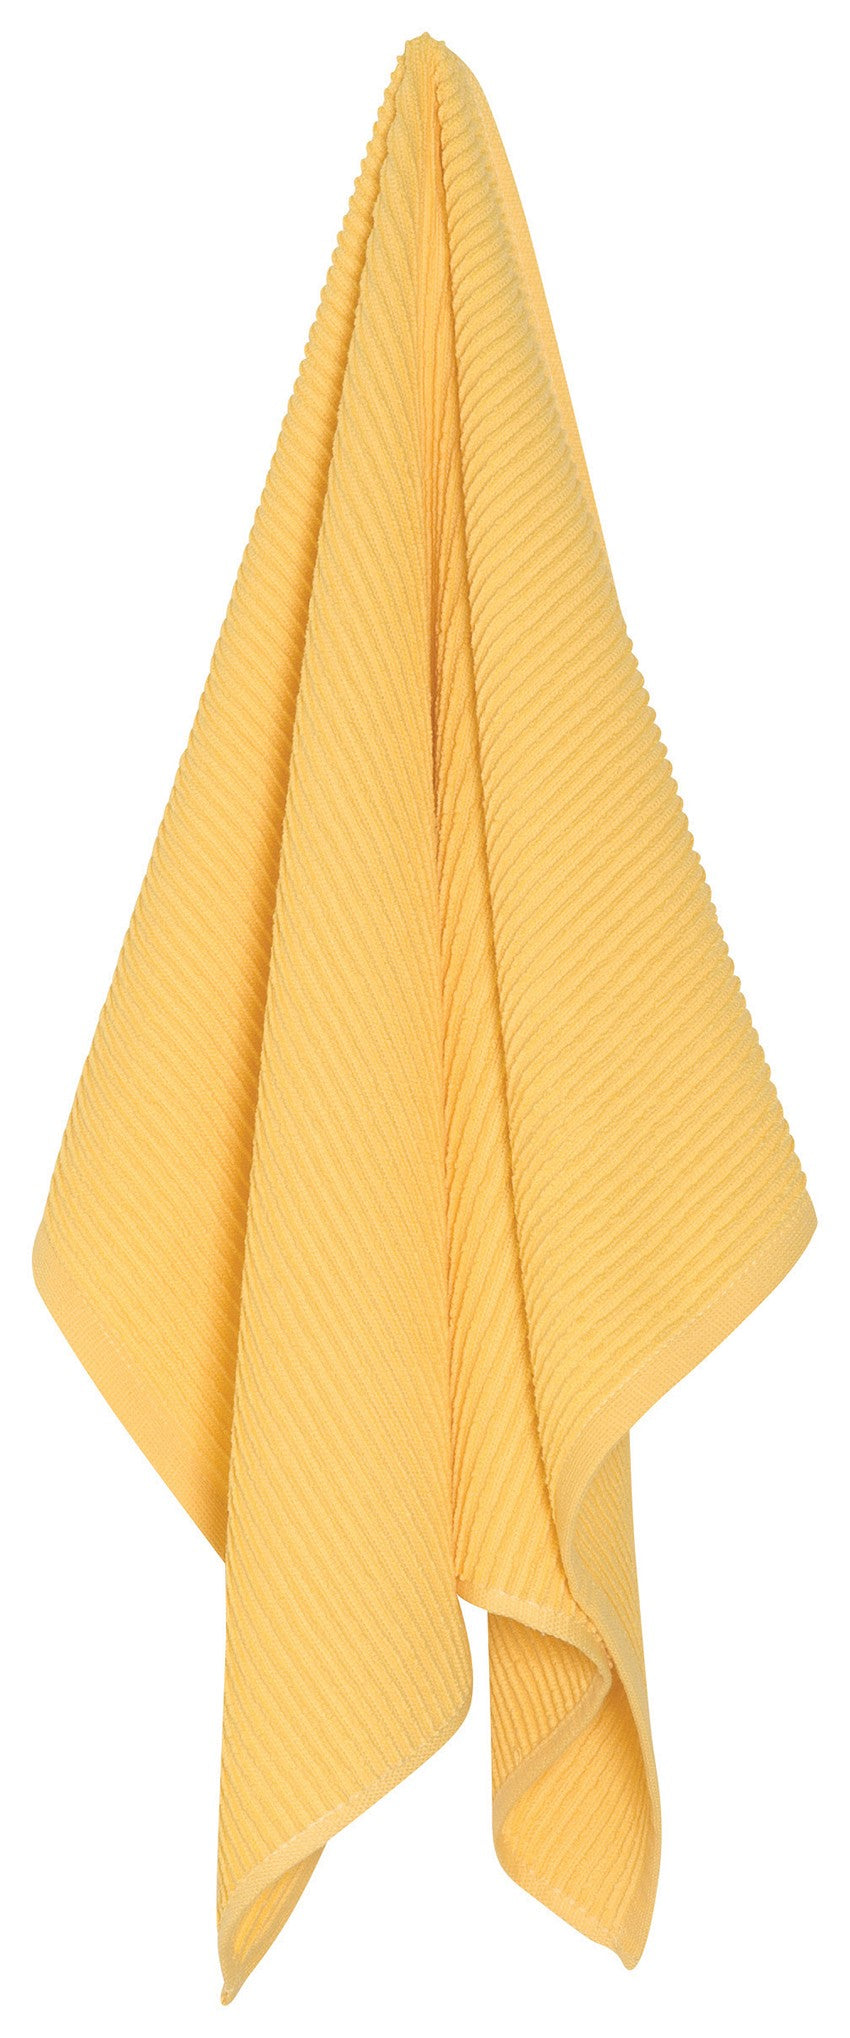 Ripple Dishtowel - Lemon